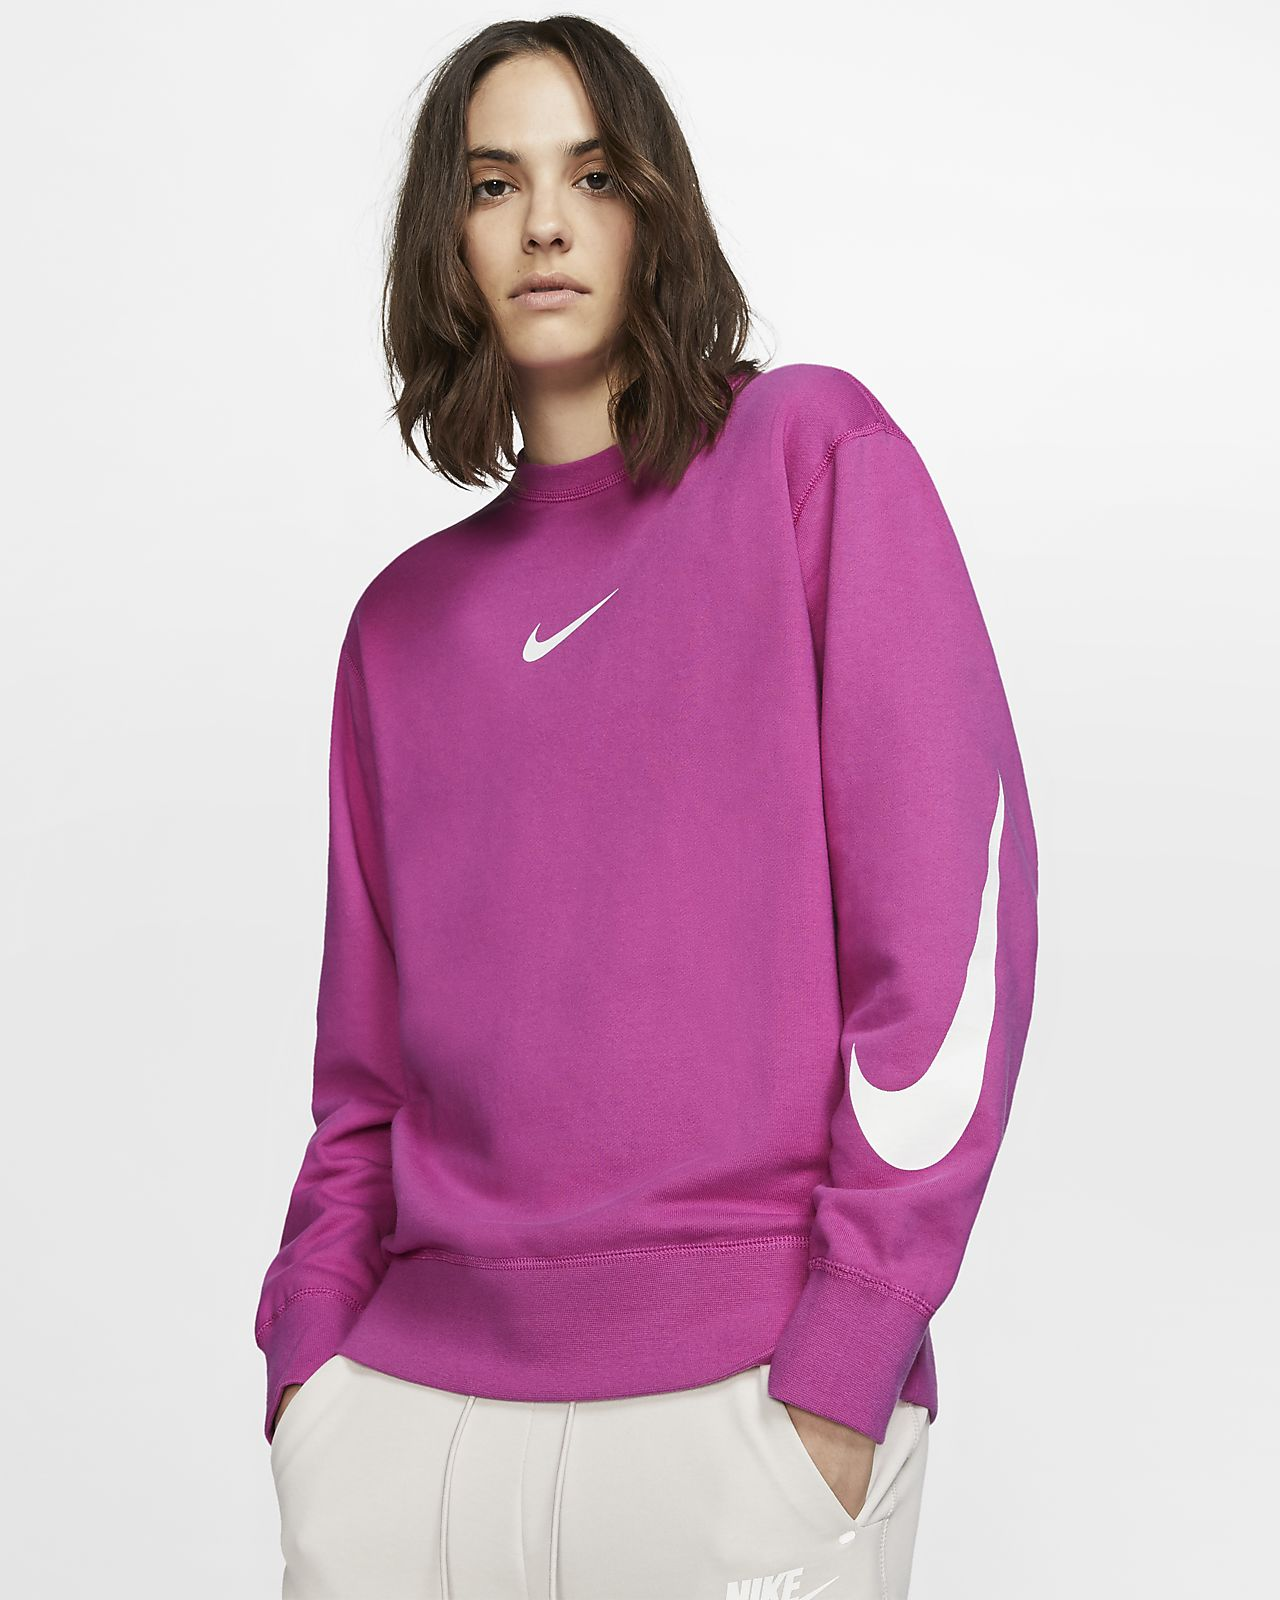 Nike Sportswear Swoosh Long-Sleeve French Terry Crew